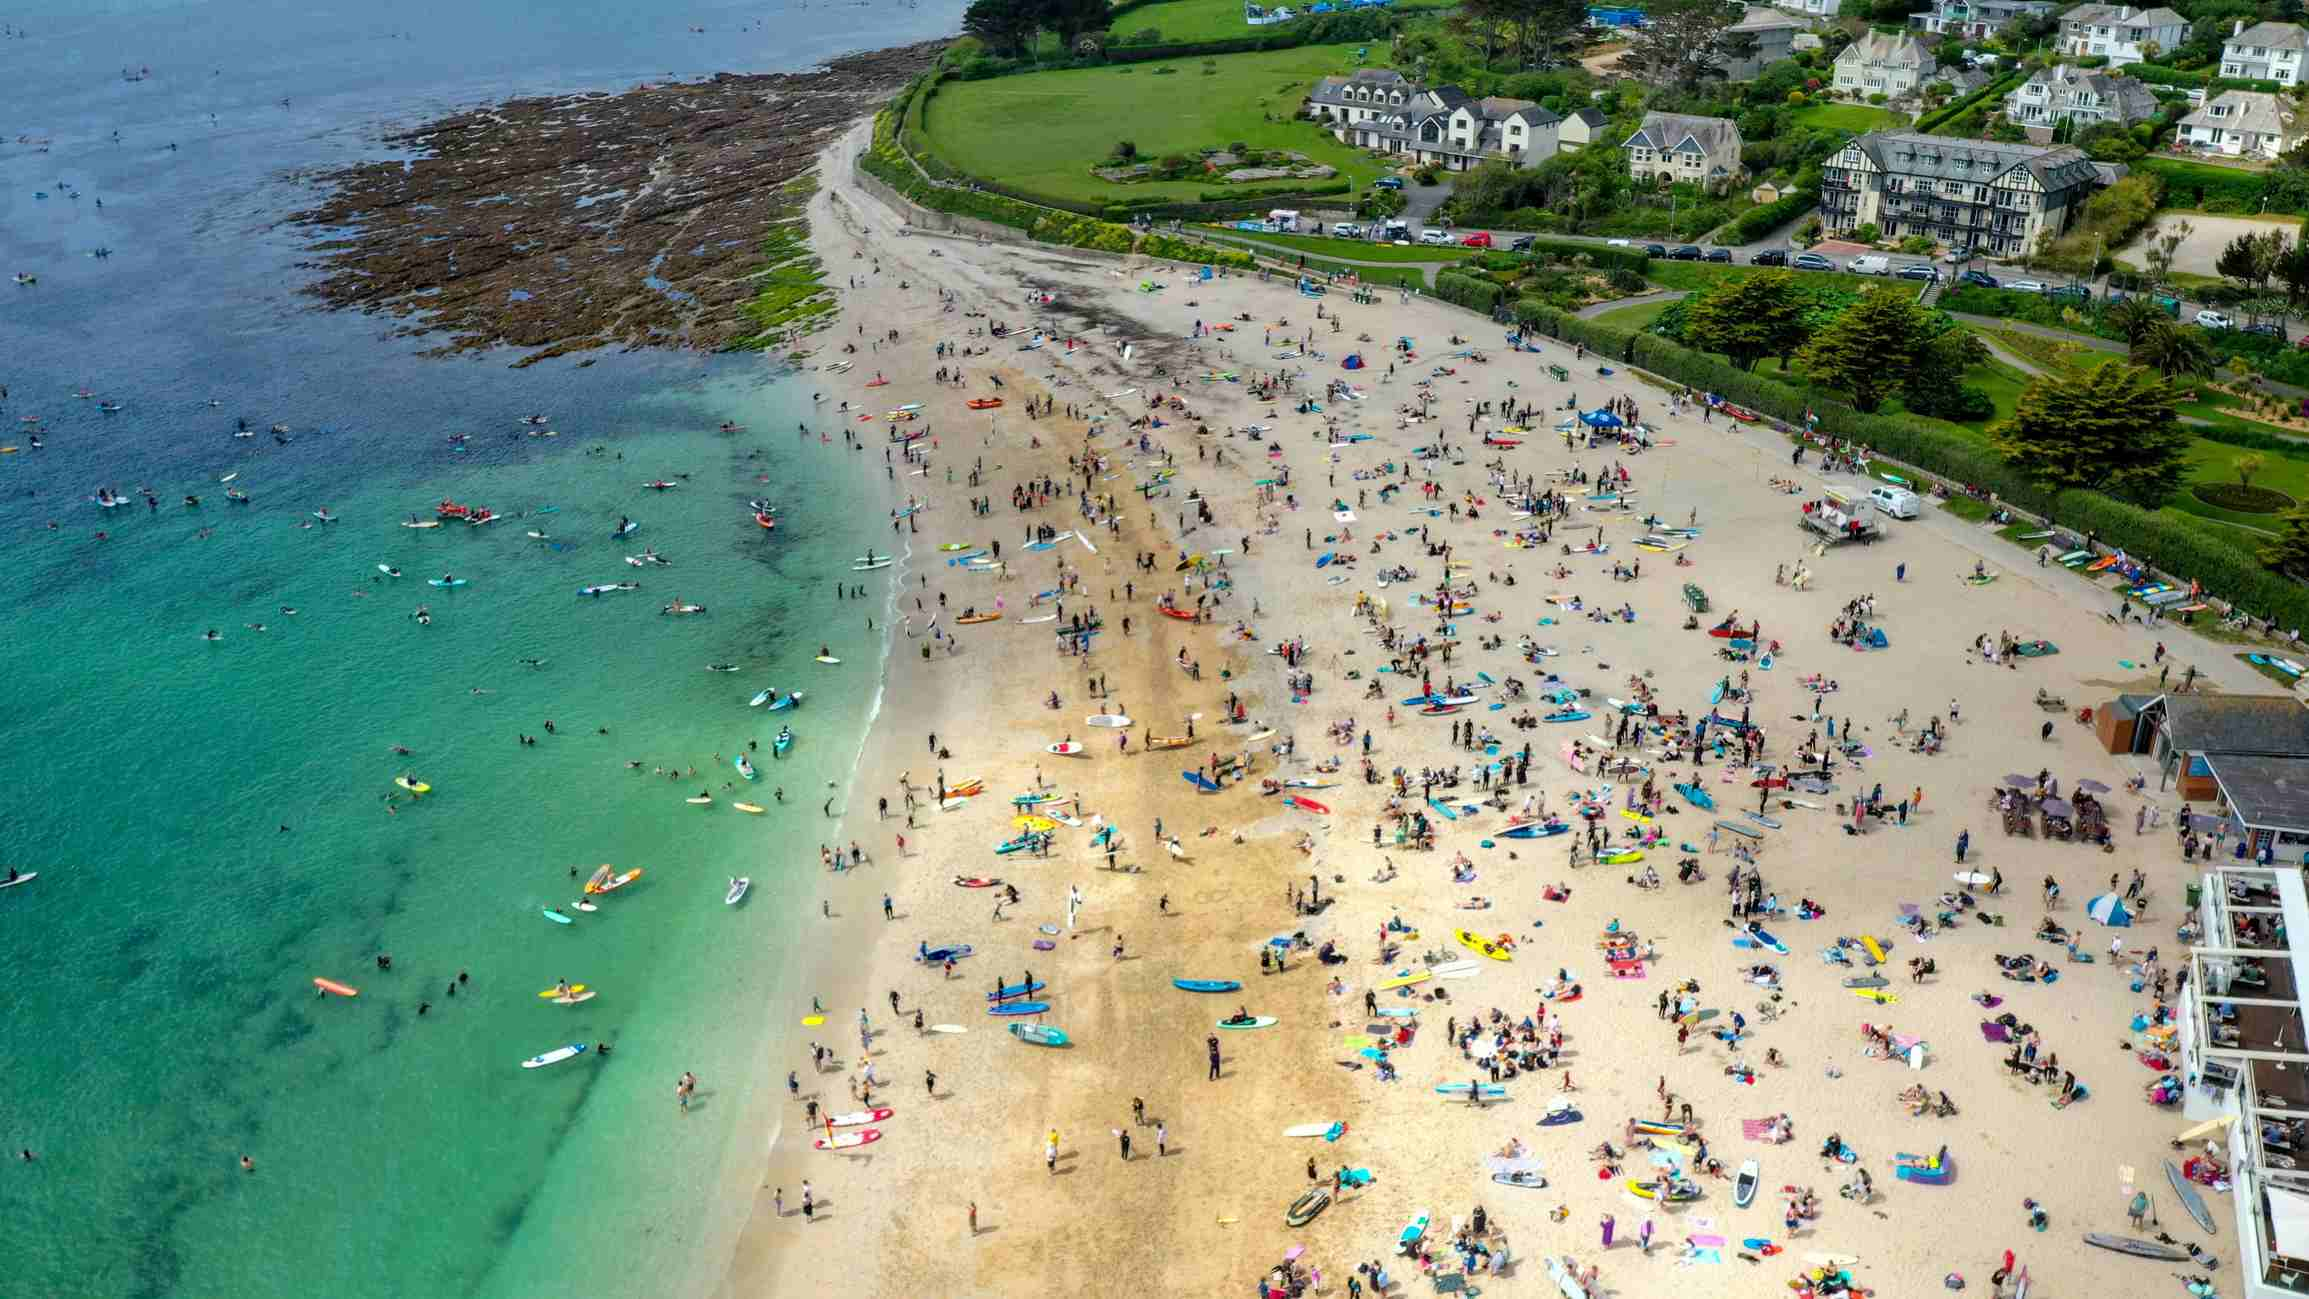 Aerial view of protesters gathered on Gyllyngvase Beach in Falmouth ahead of the paddle out. A strip of sandy beach takes up the centre of the image, with aquamarine sea to the left and green fields to the right. The beach is very busy, with many people assembled in swimsuits and wetsuits ready for the paddle out.